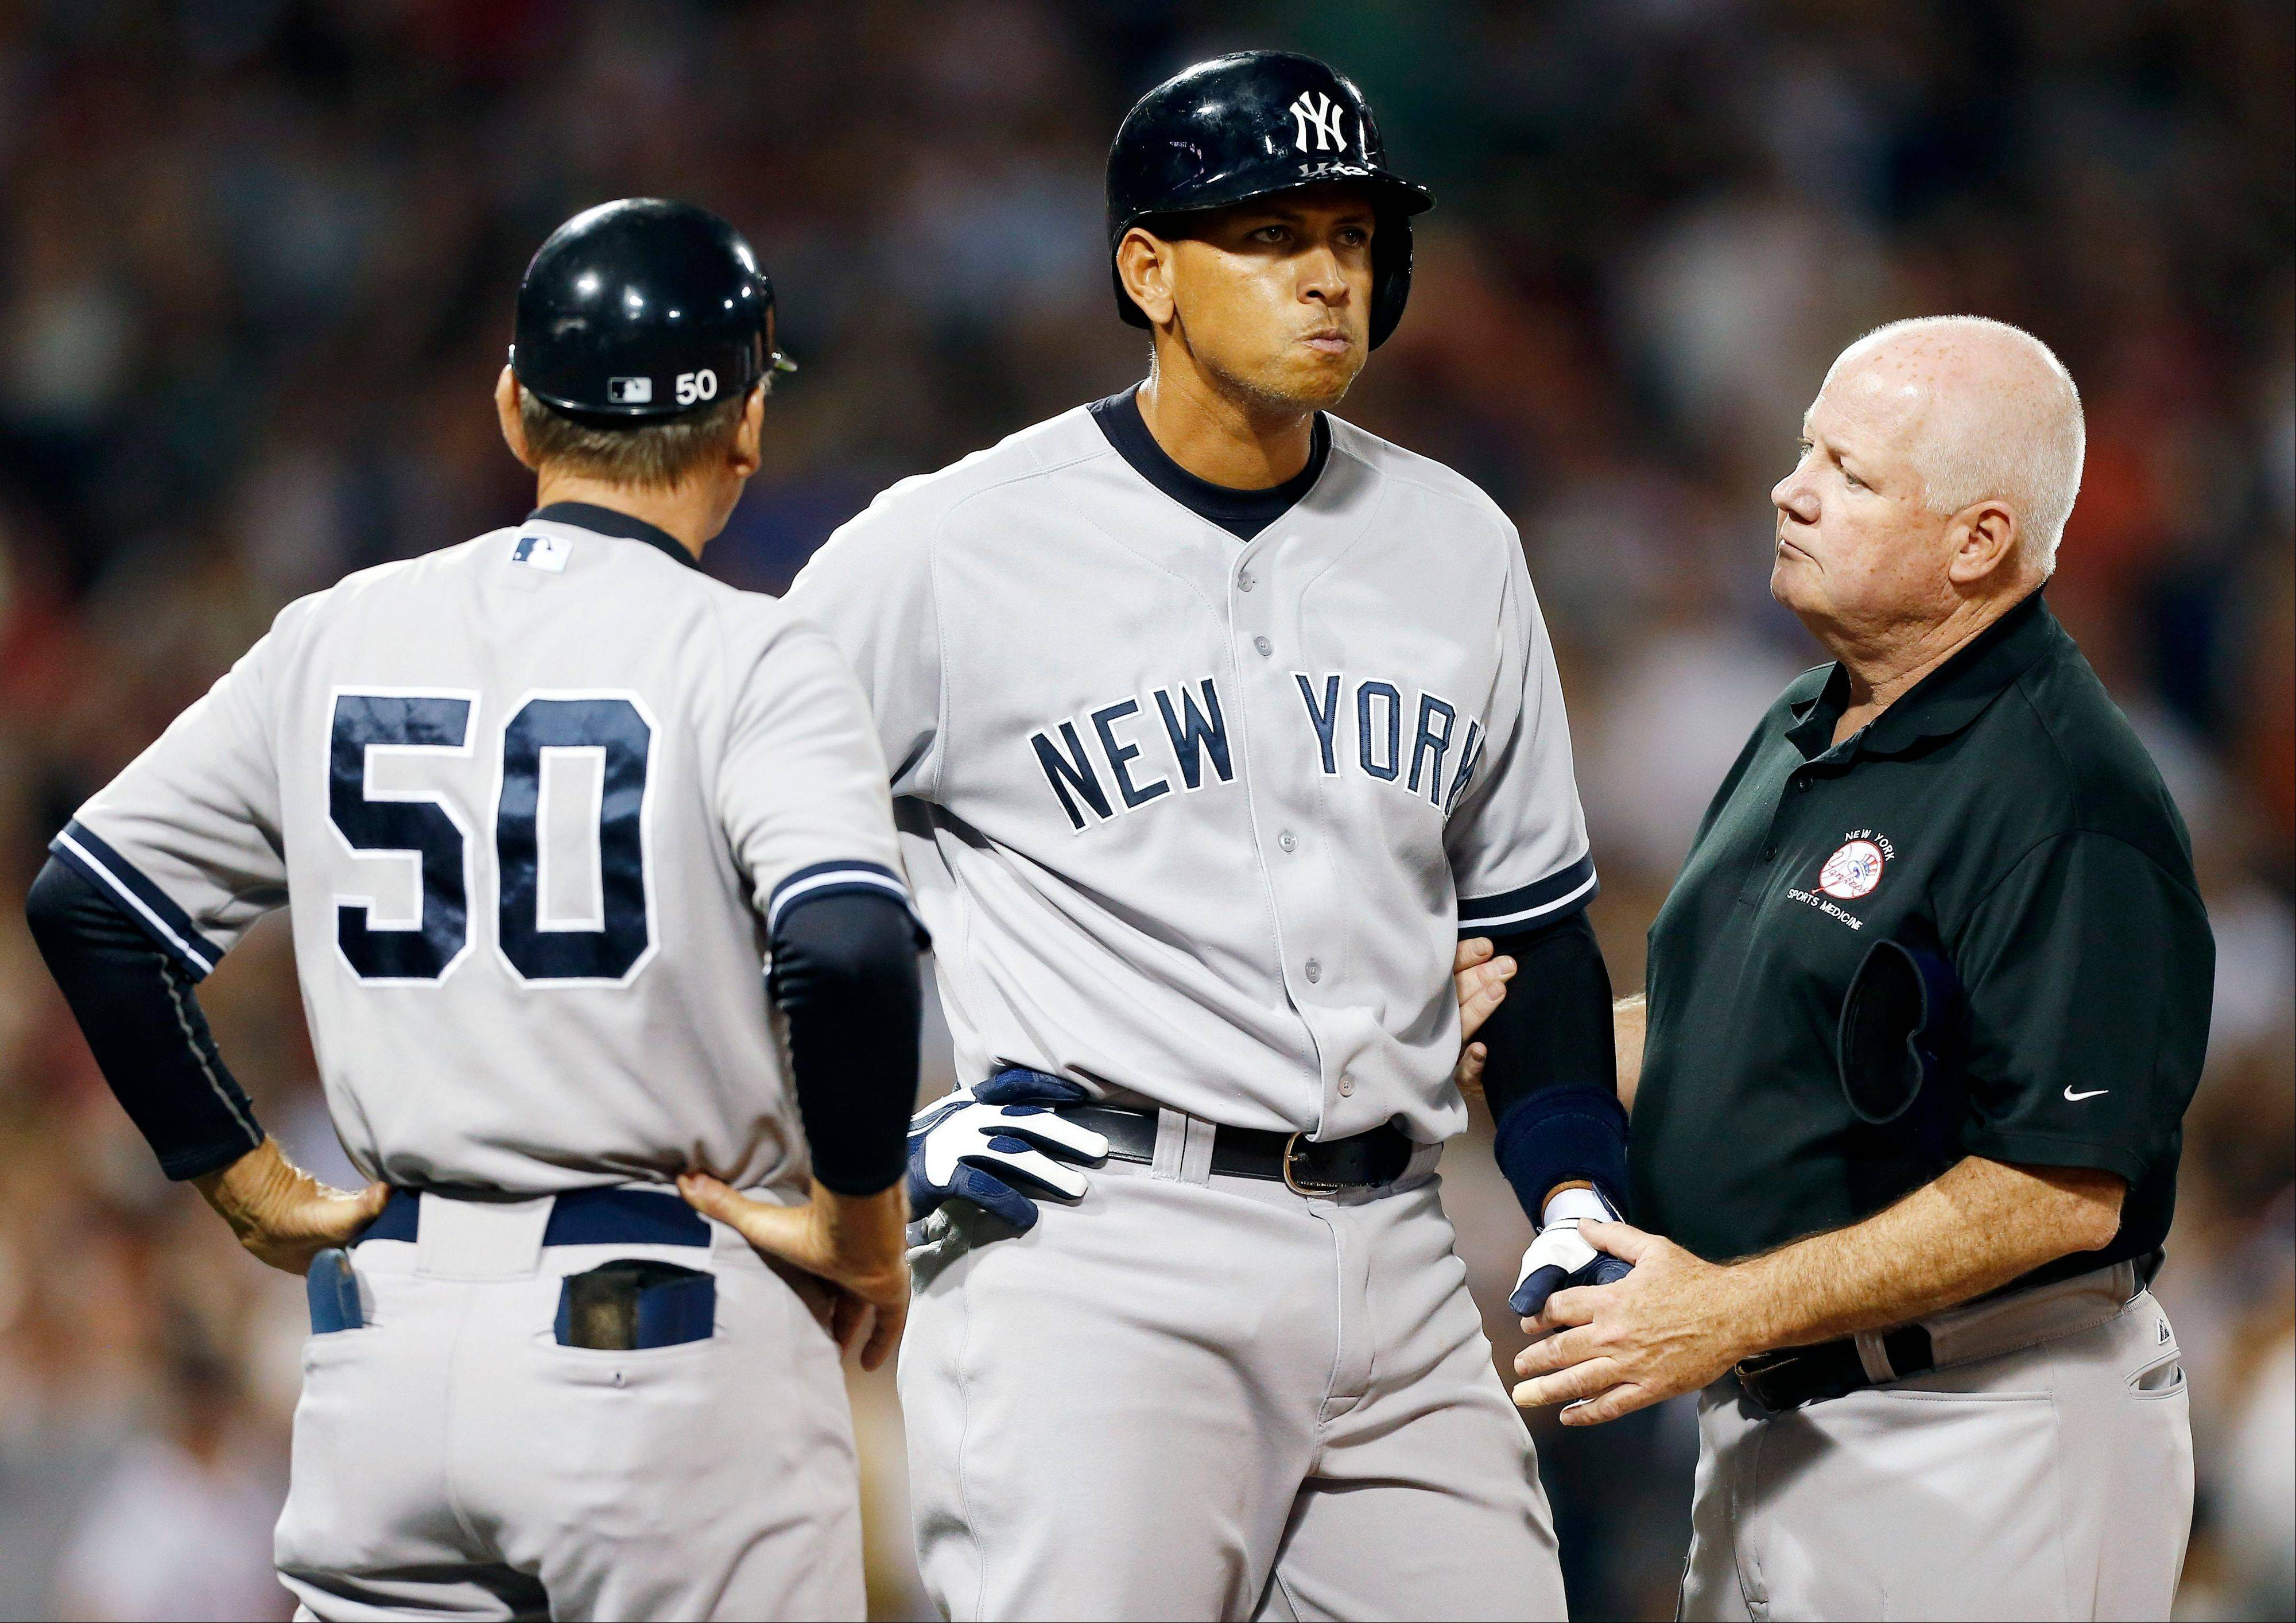 Alex Rodriguez, center, is tended to by a trainer at first base after being hit by a pitch from Red Sox pitcher Ryan Dempster in the second inning of Sunday's game in Boston.